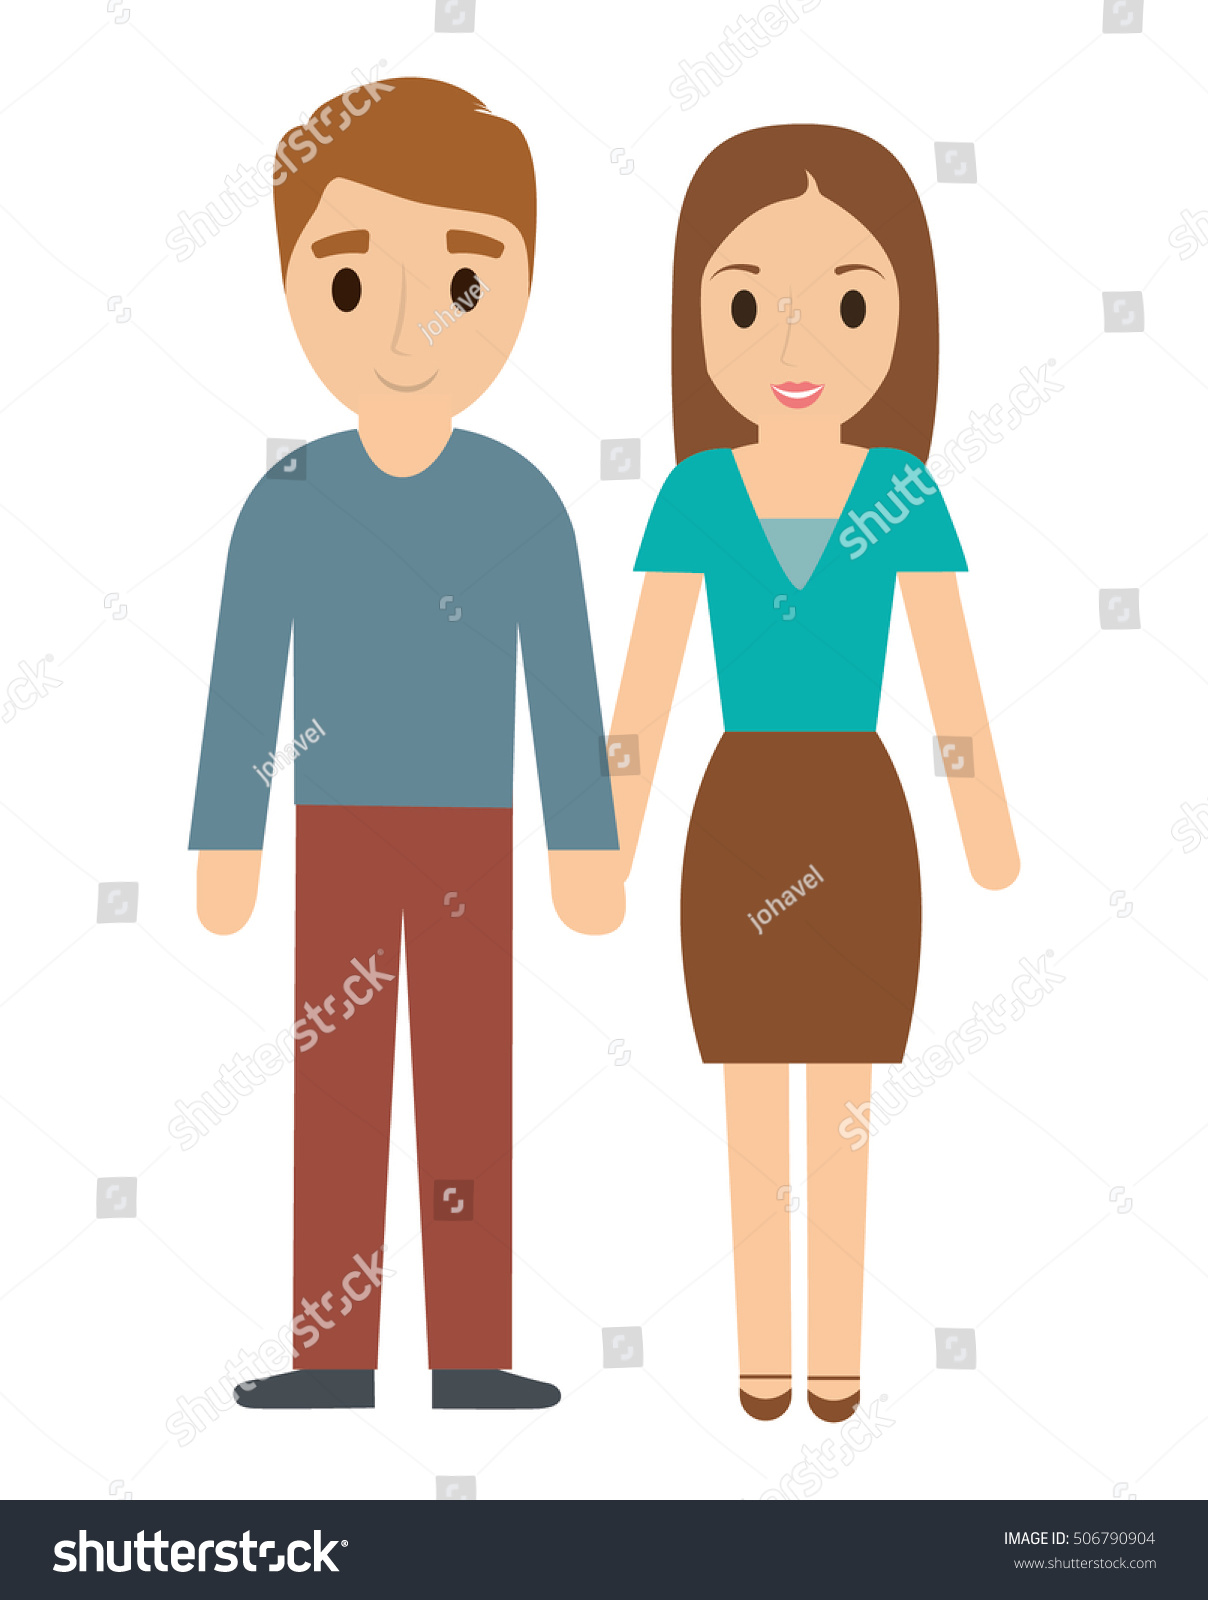 Mother And Father Cartoon : mother, father, cartoon, Couple, Father, Mother, Cartoon, Family, Stock, Vector, (Royalty, Free), 506790904